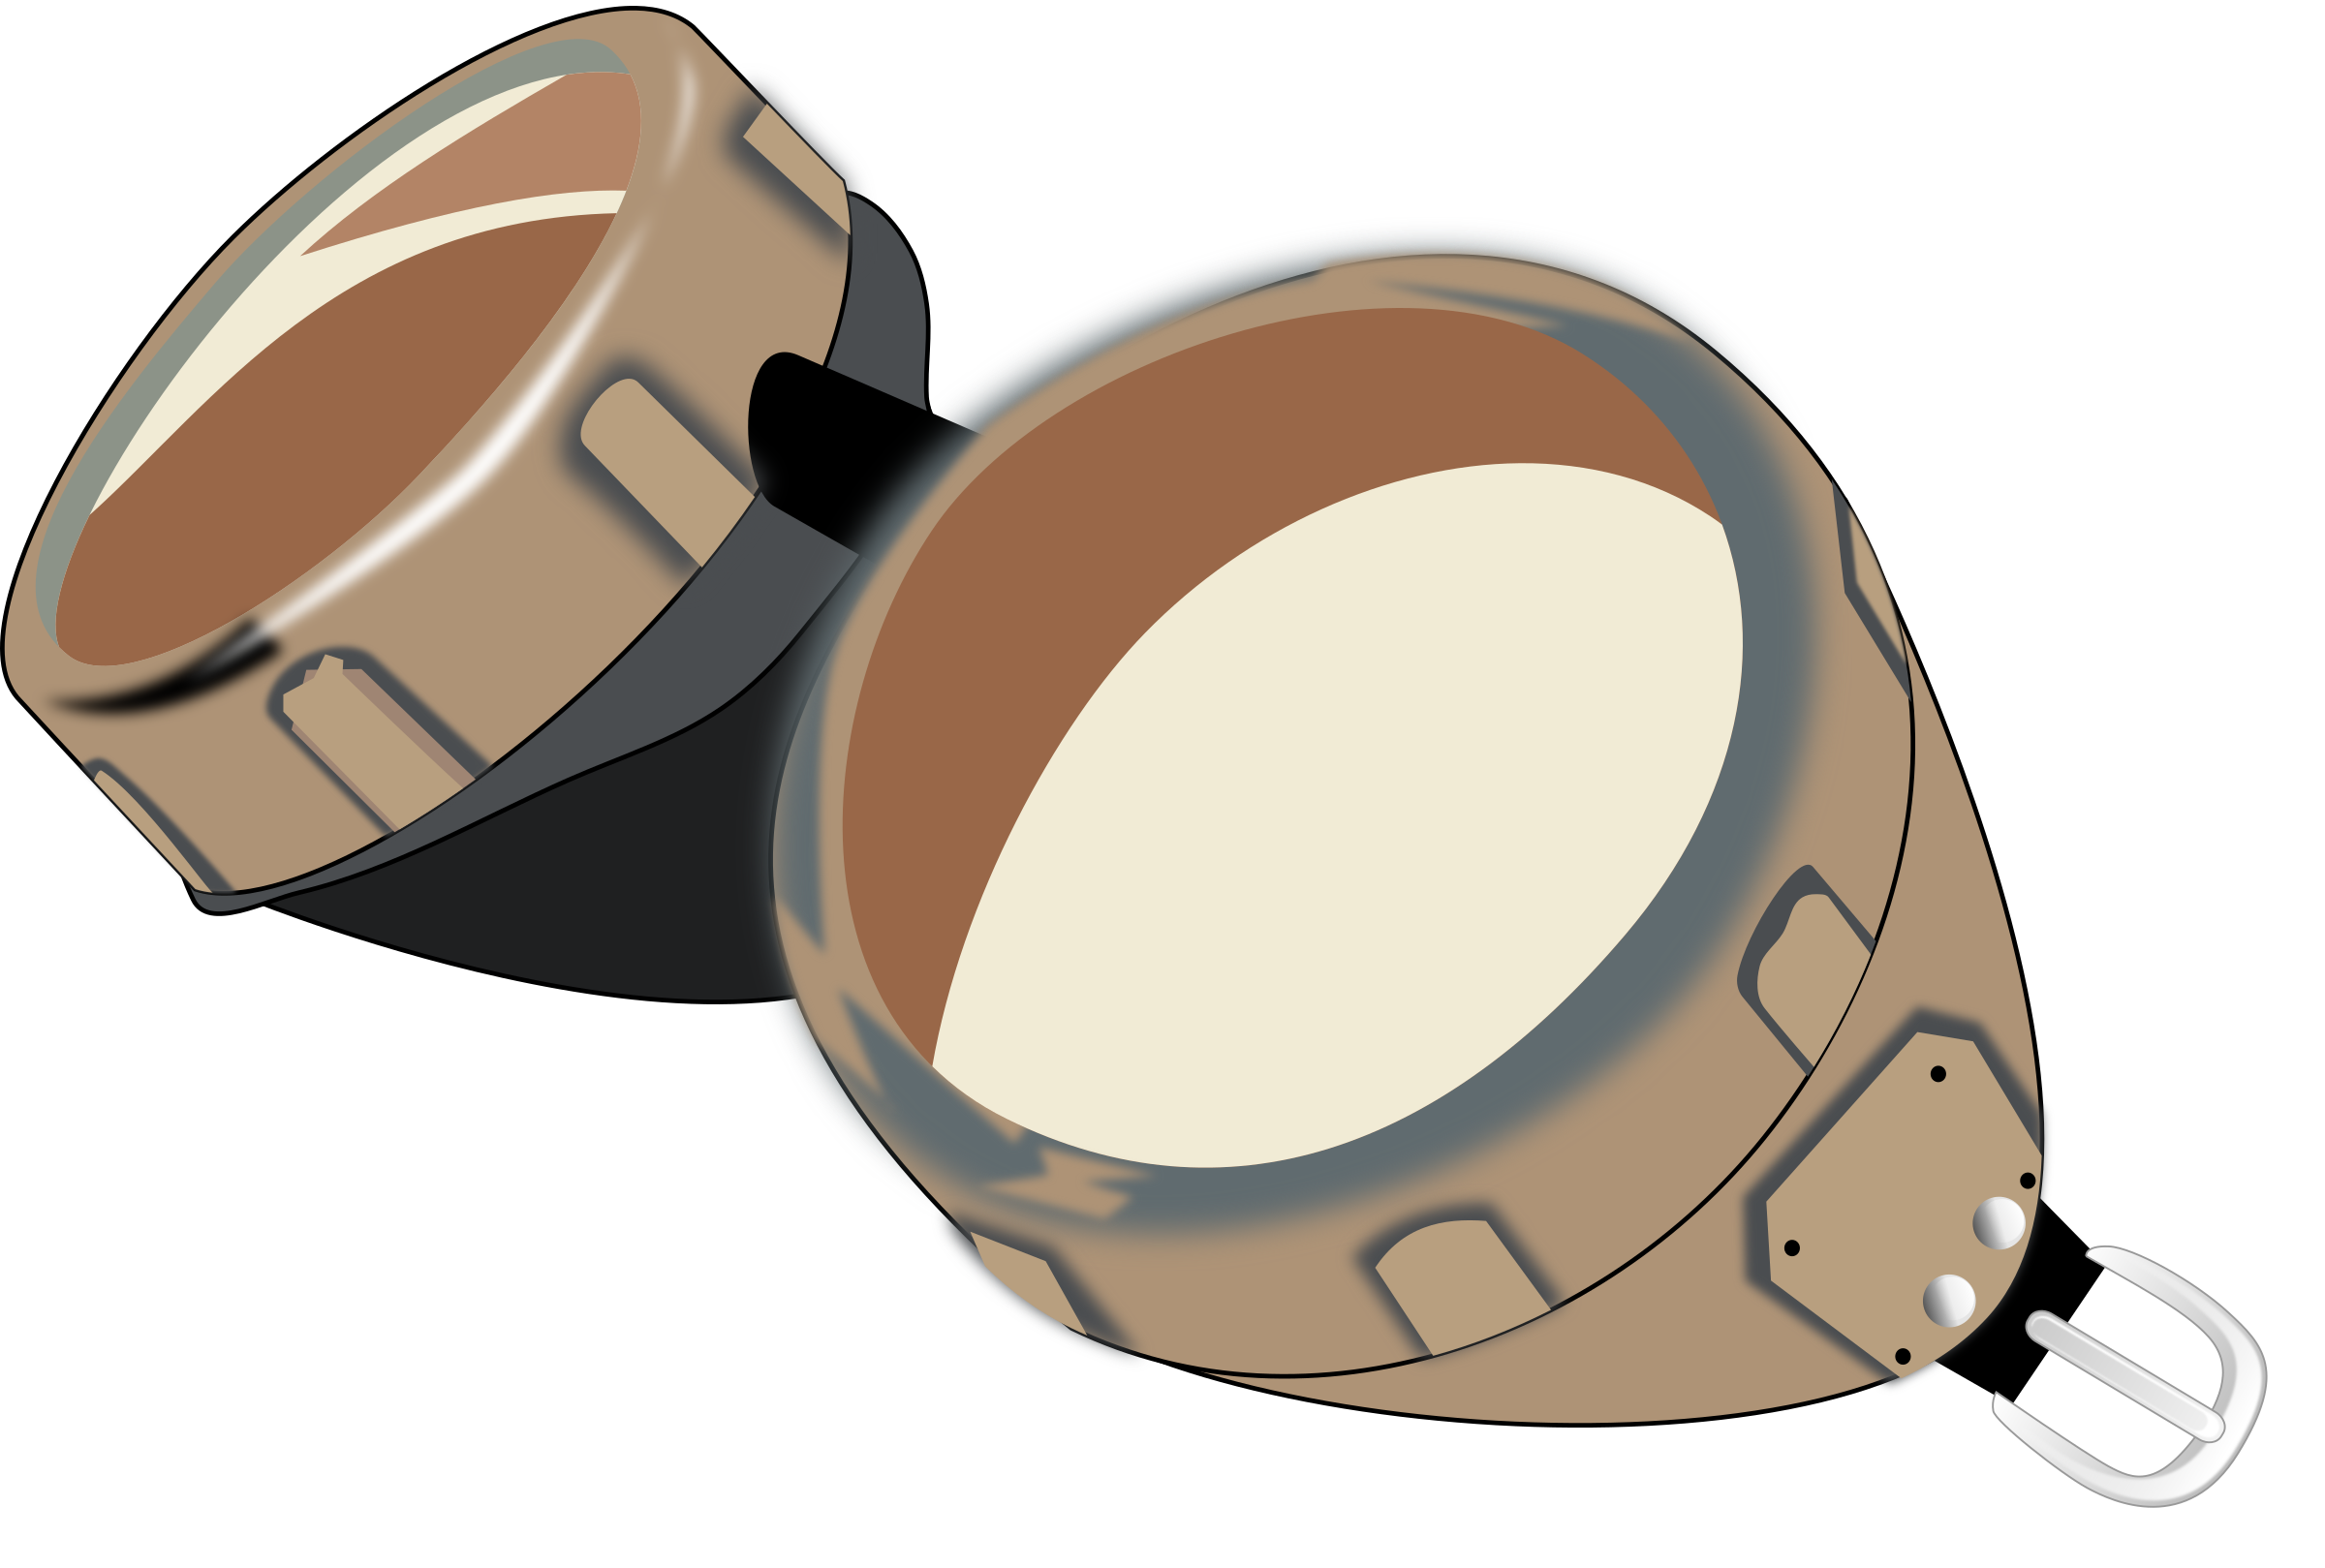 Goggles clipart steampunk.  collection of high